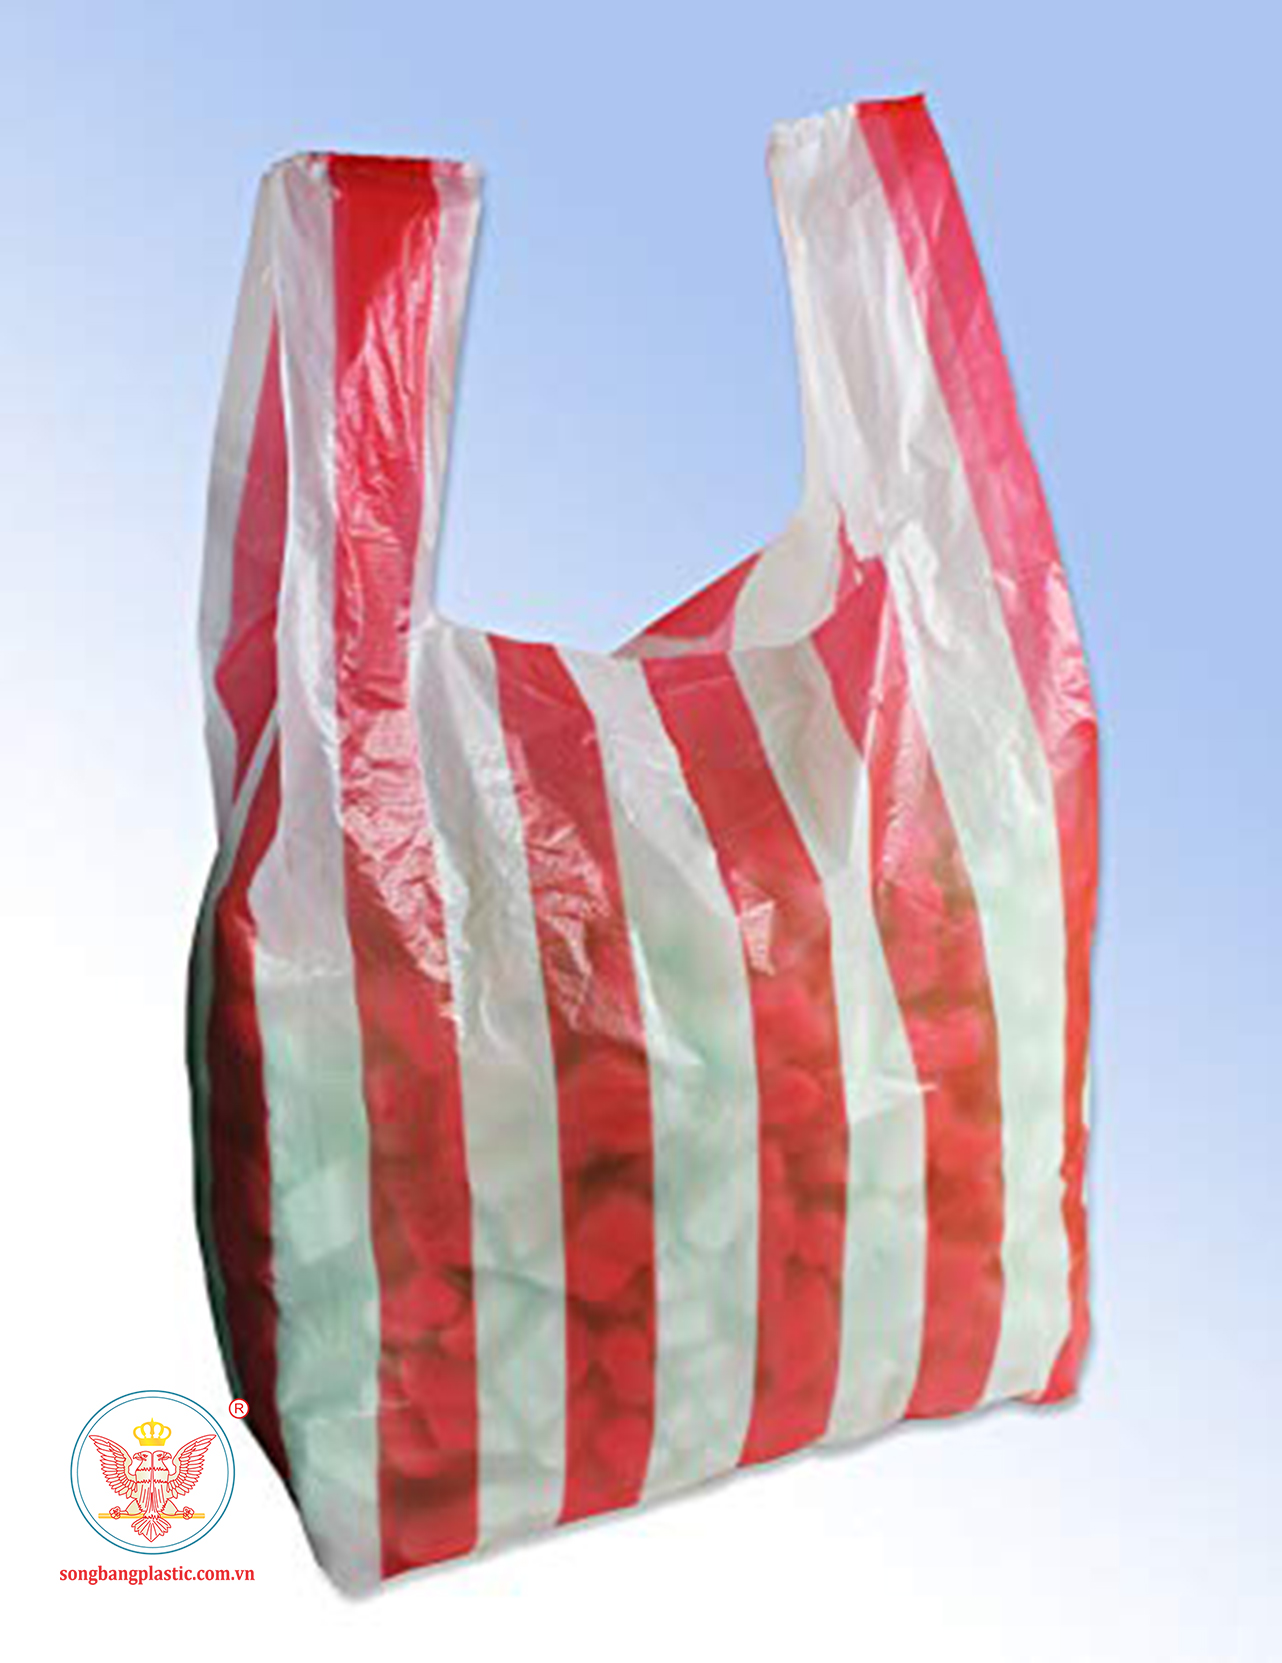 Striped White - Red plastic bags